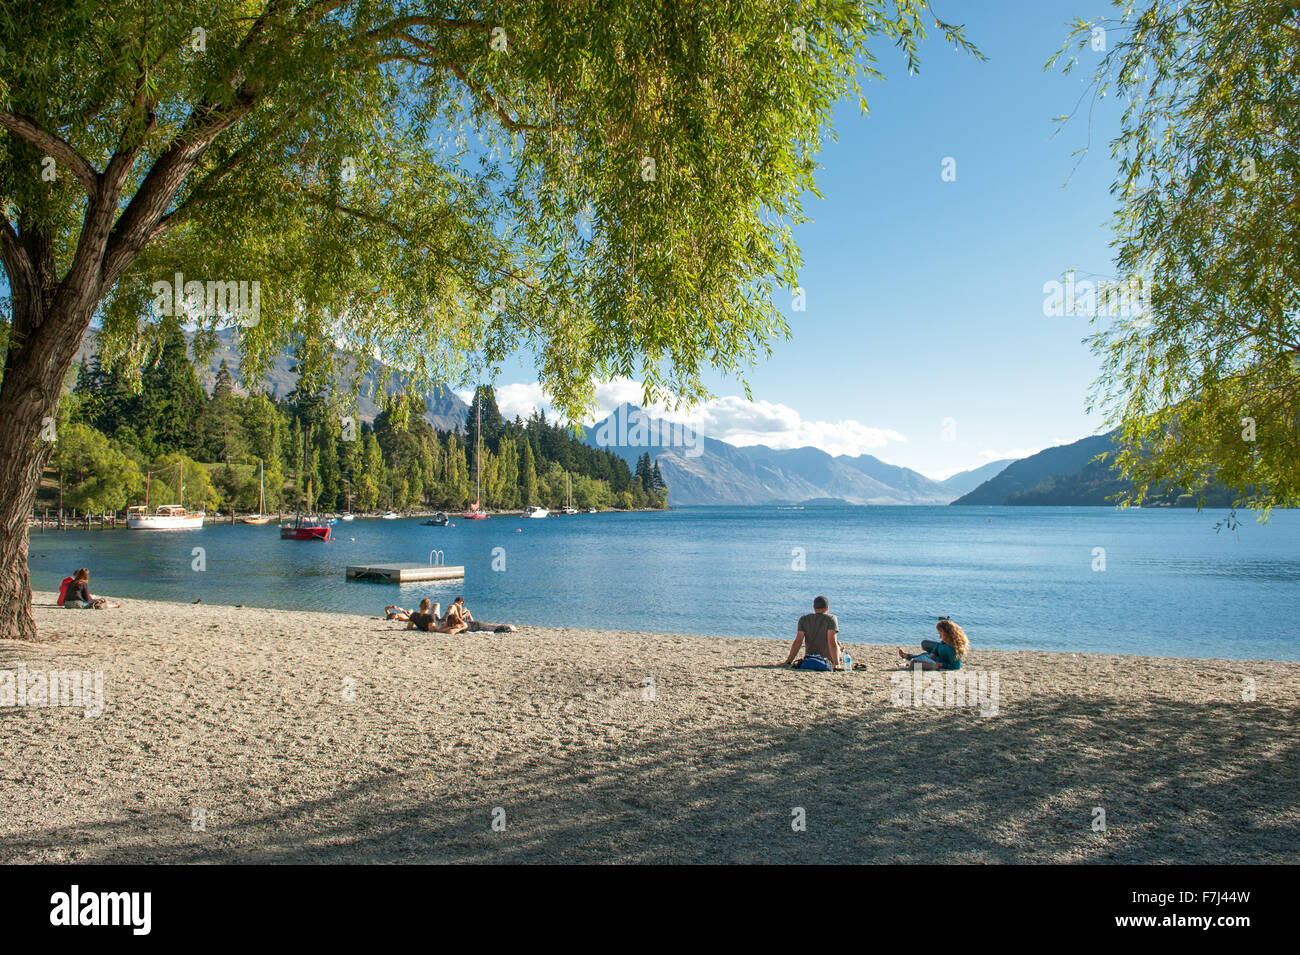 Tourists relax at the shore of Lake Wakatipu in Queenstown, New Zealand. - Stock Image